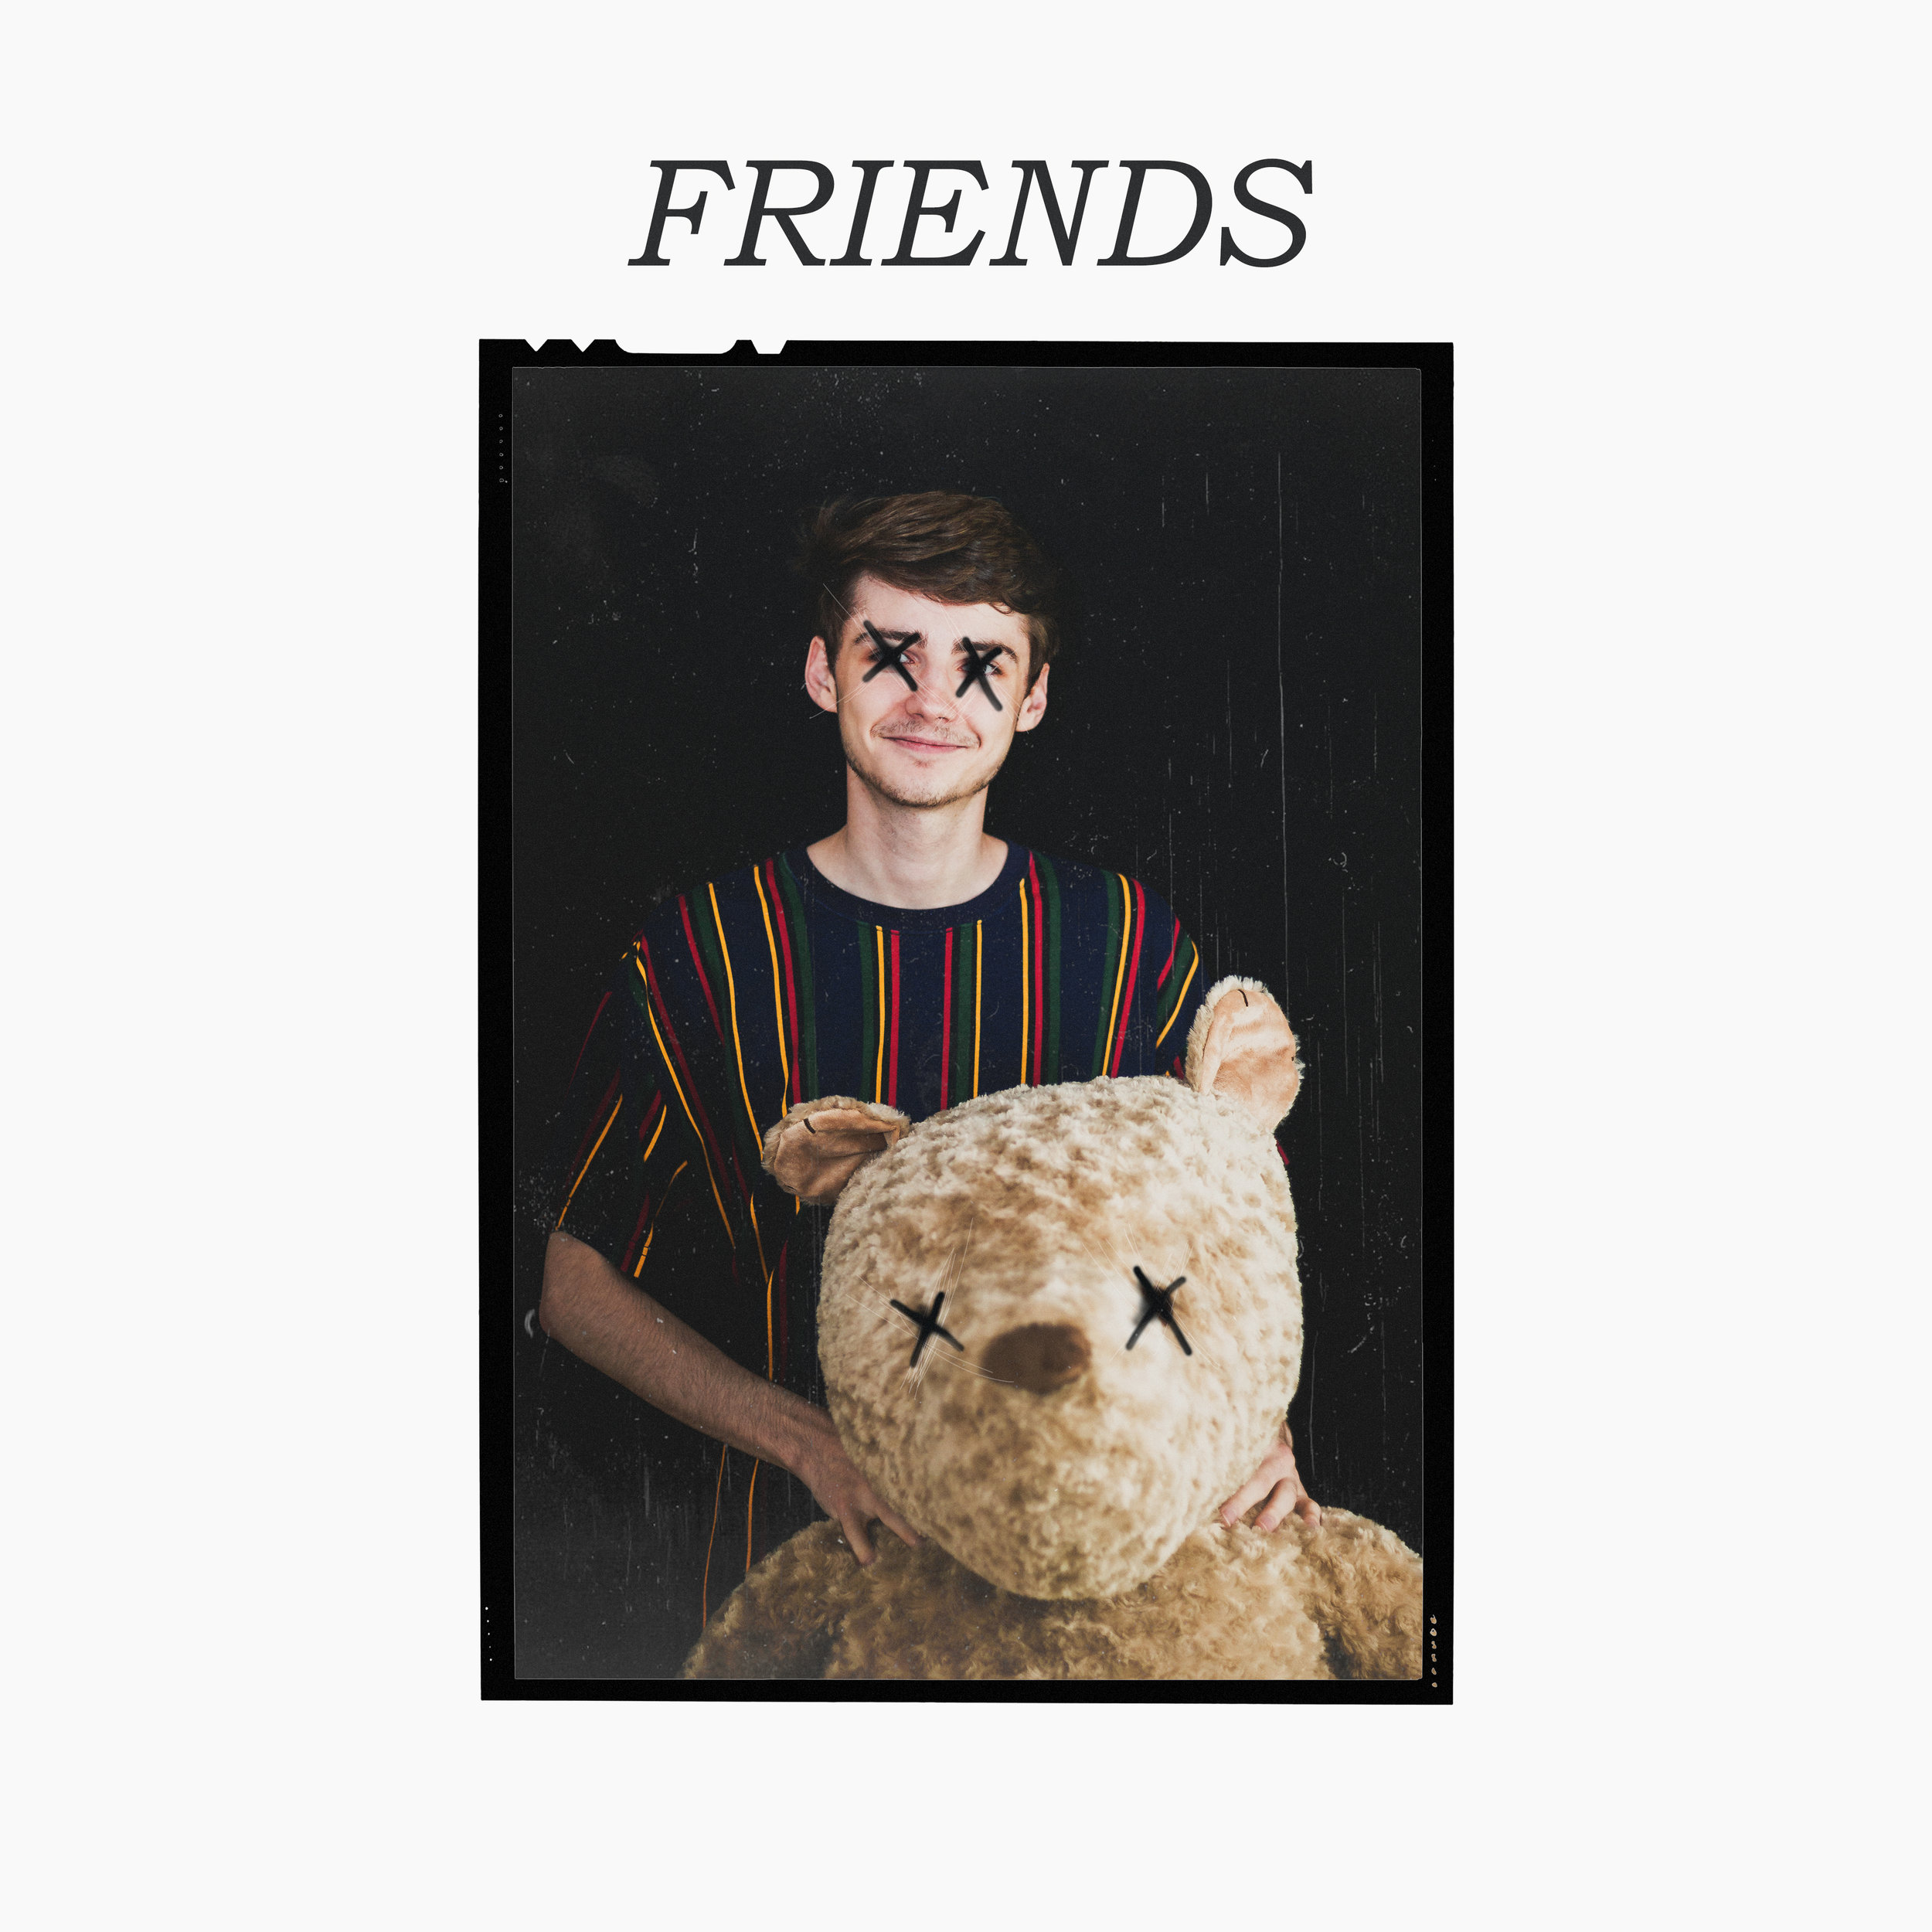 Friends - (2018) - Artwork by Josh Dane and Holden Mesk